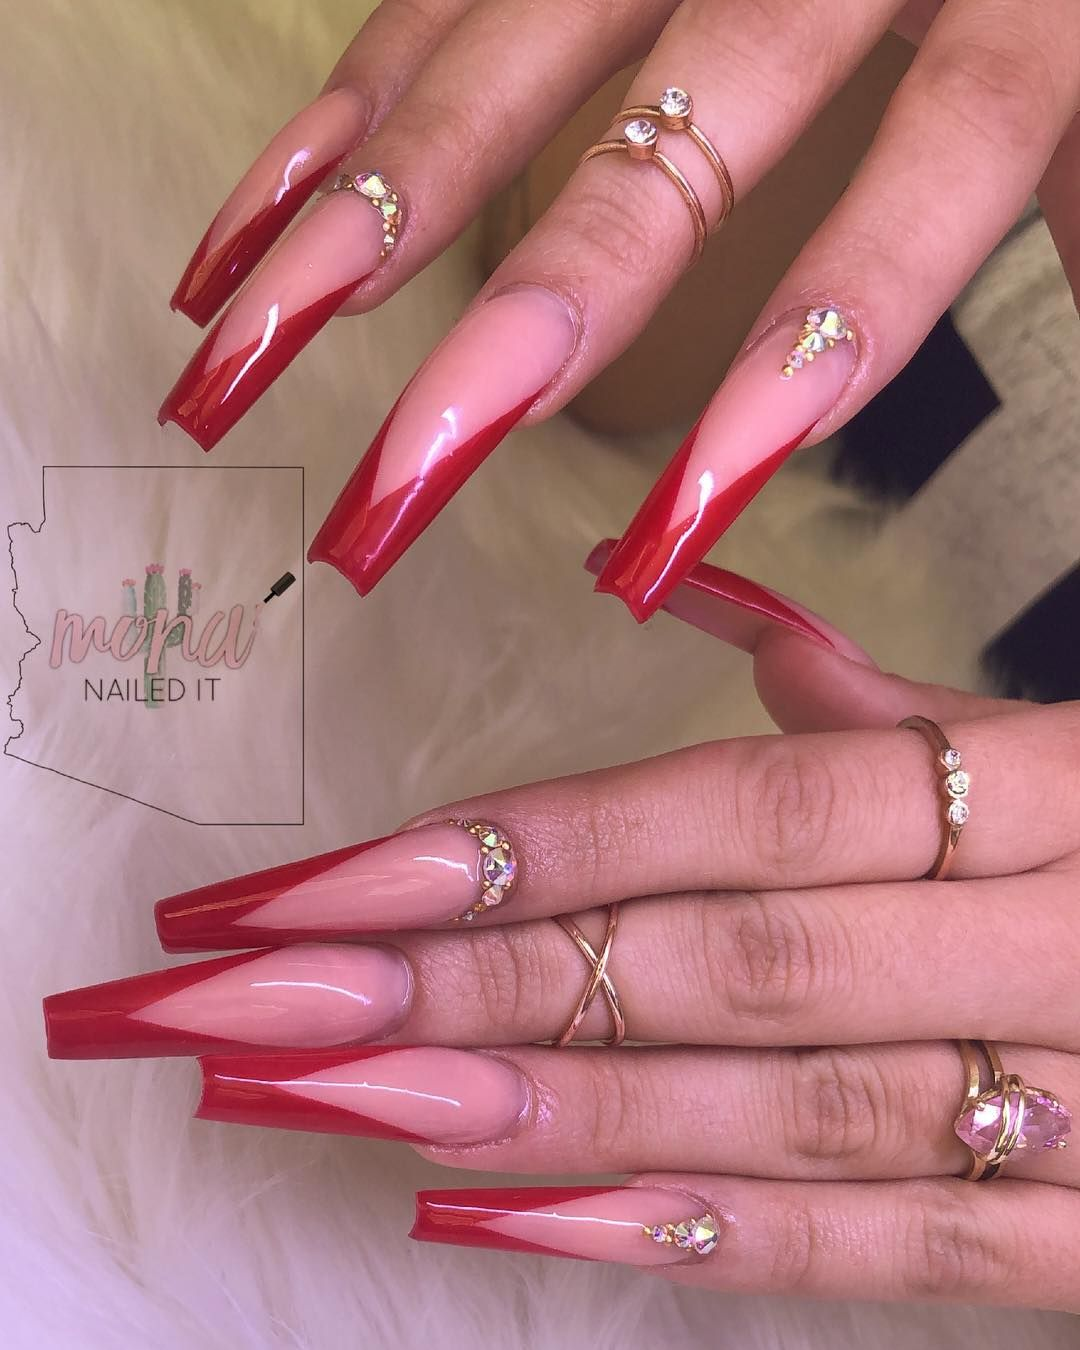 Image May Contain One Or More People And Closeup Sculpted Nails Ballerina Nails Red Acrylic Nails